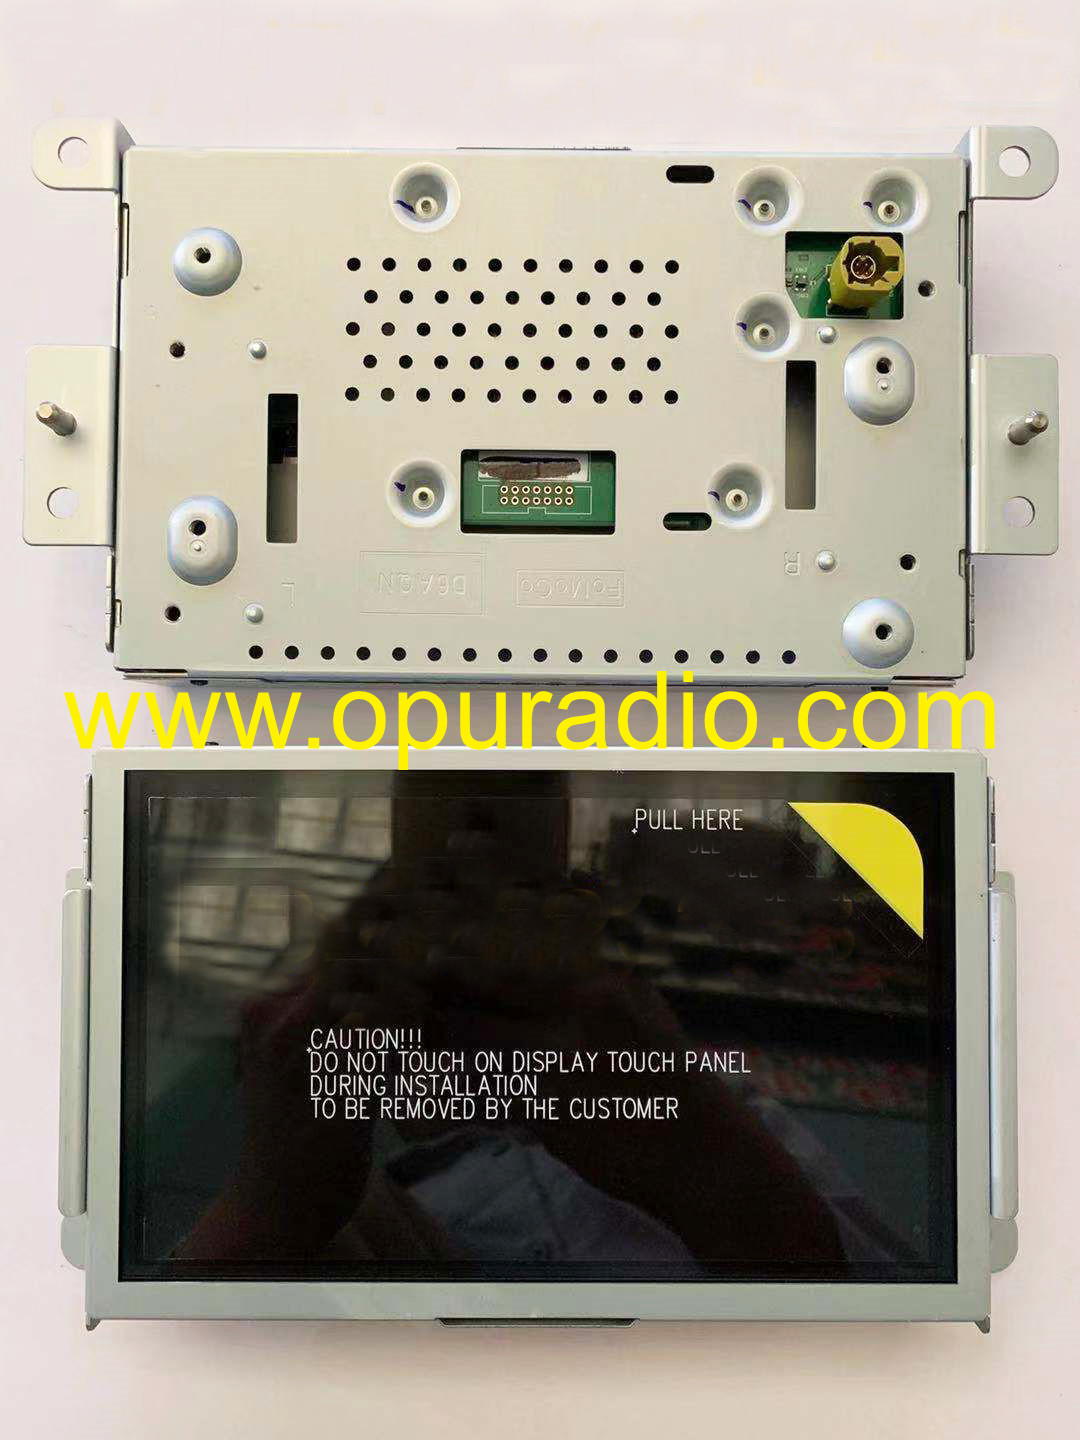 275 Best Lcd Unit Images On Pinterest: LQ080Y5DZ05 Monitor With Touch Screen Display Module For